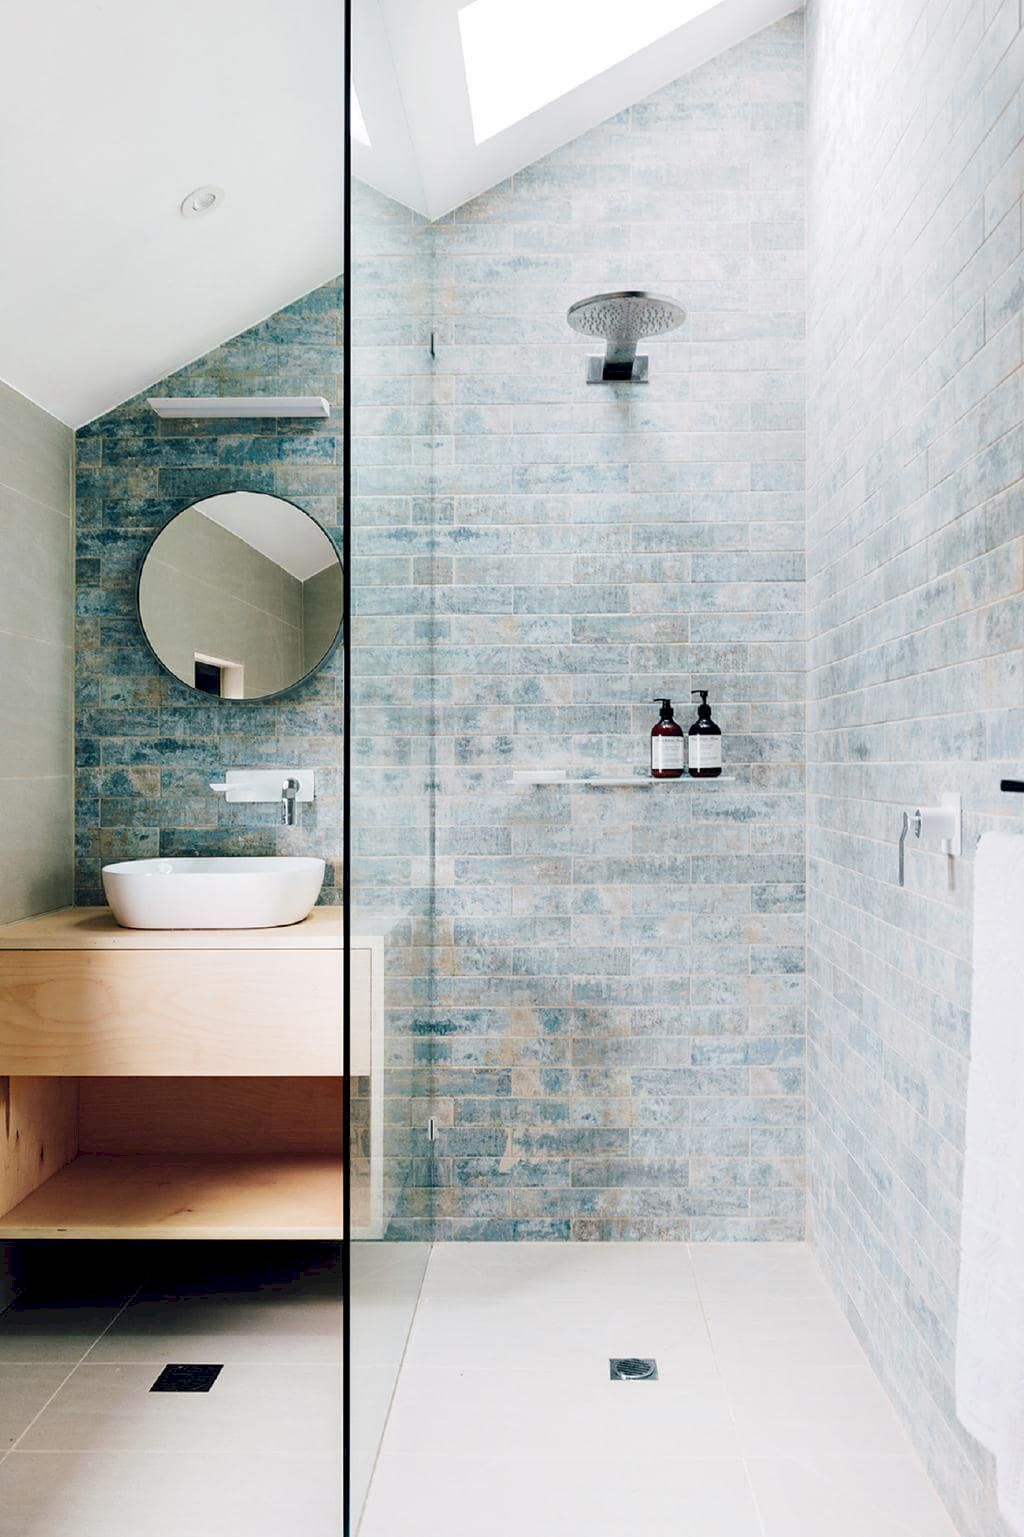 70+ Tiles Ideas for Small Bathroom - Get more Ideas in our gallery | #smallbathroom #bathroomdecoration #bathroomideas #bathroomtiles #bathroomdecor #homedecor (82)